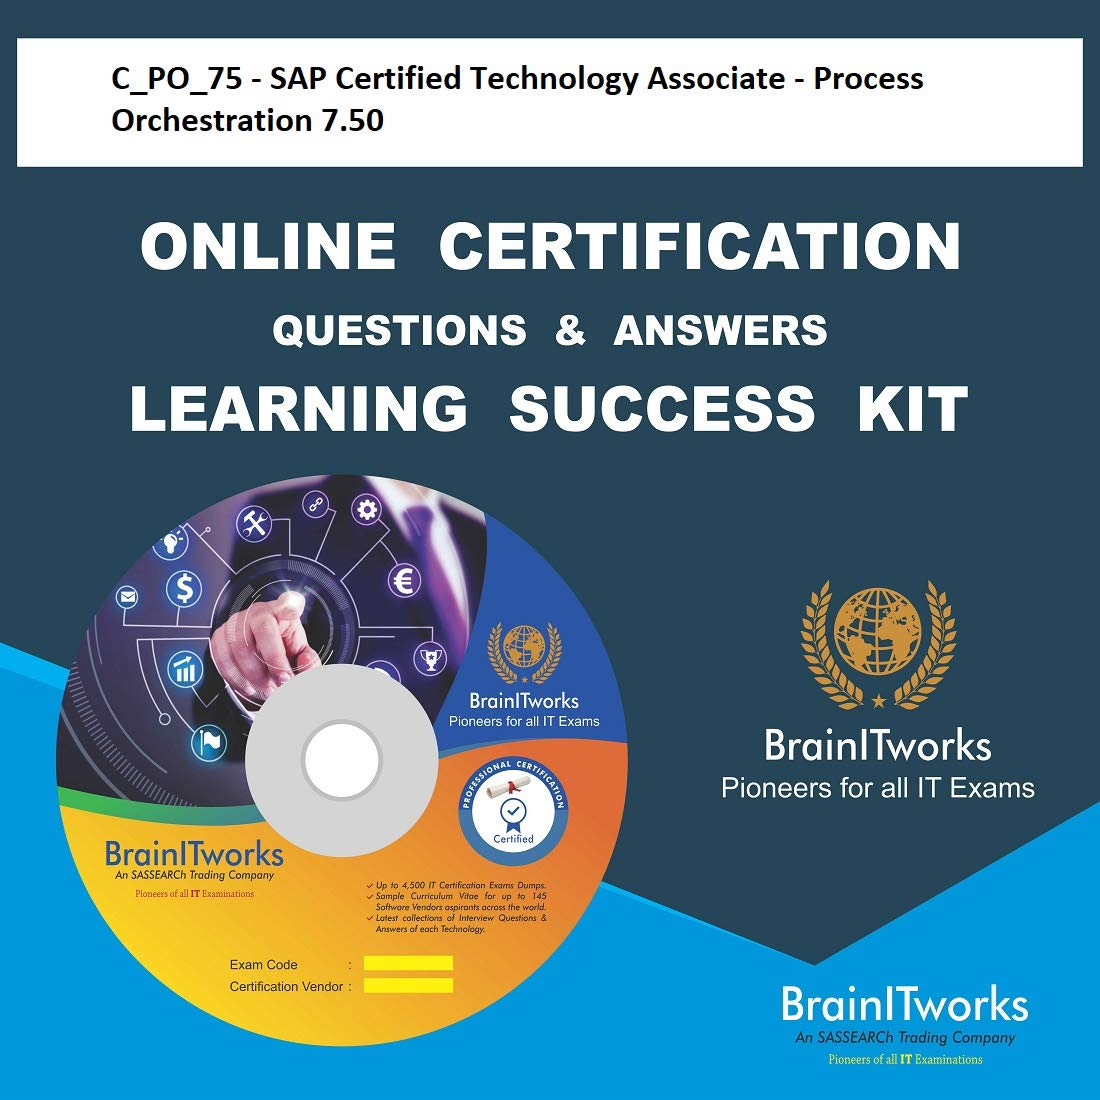 Cpo75 Sap Certified Technology Associate Process Orchestration